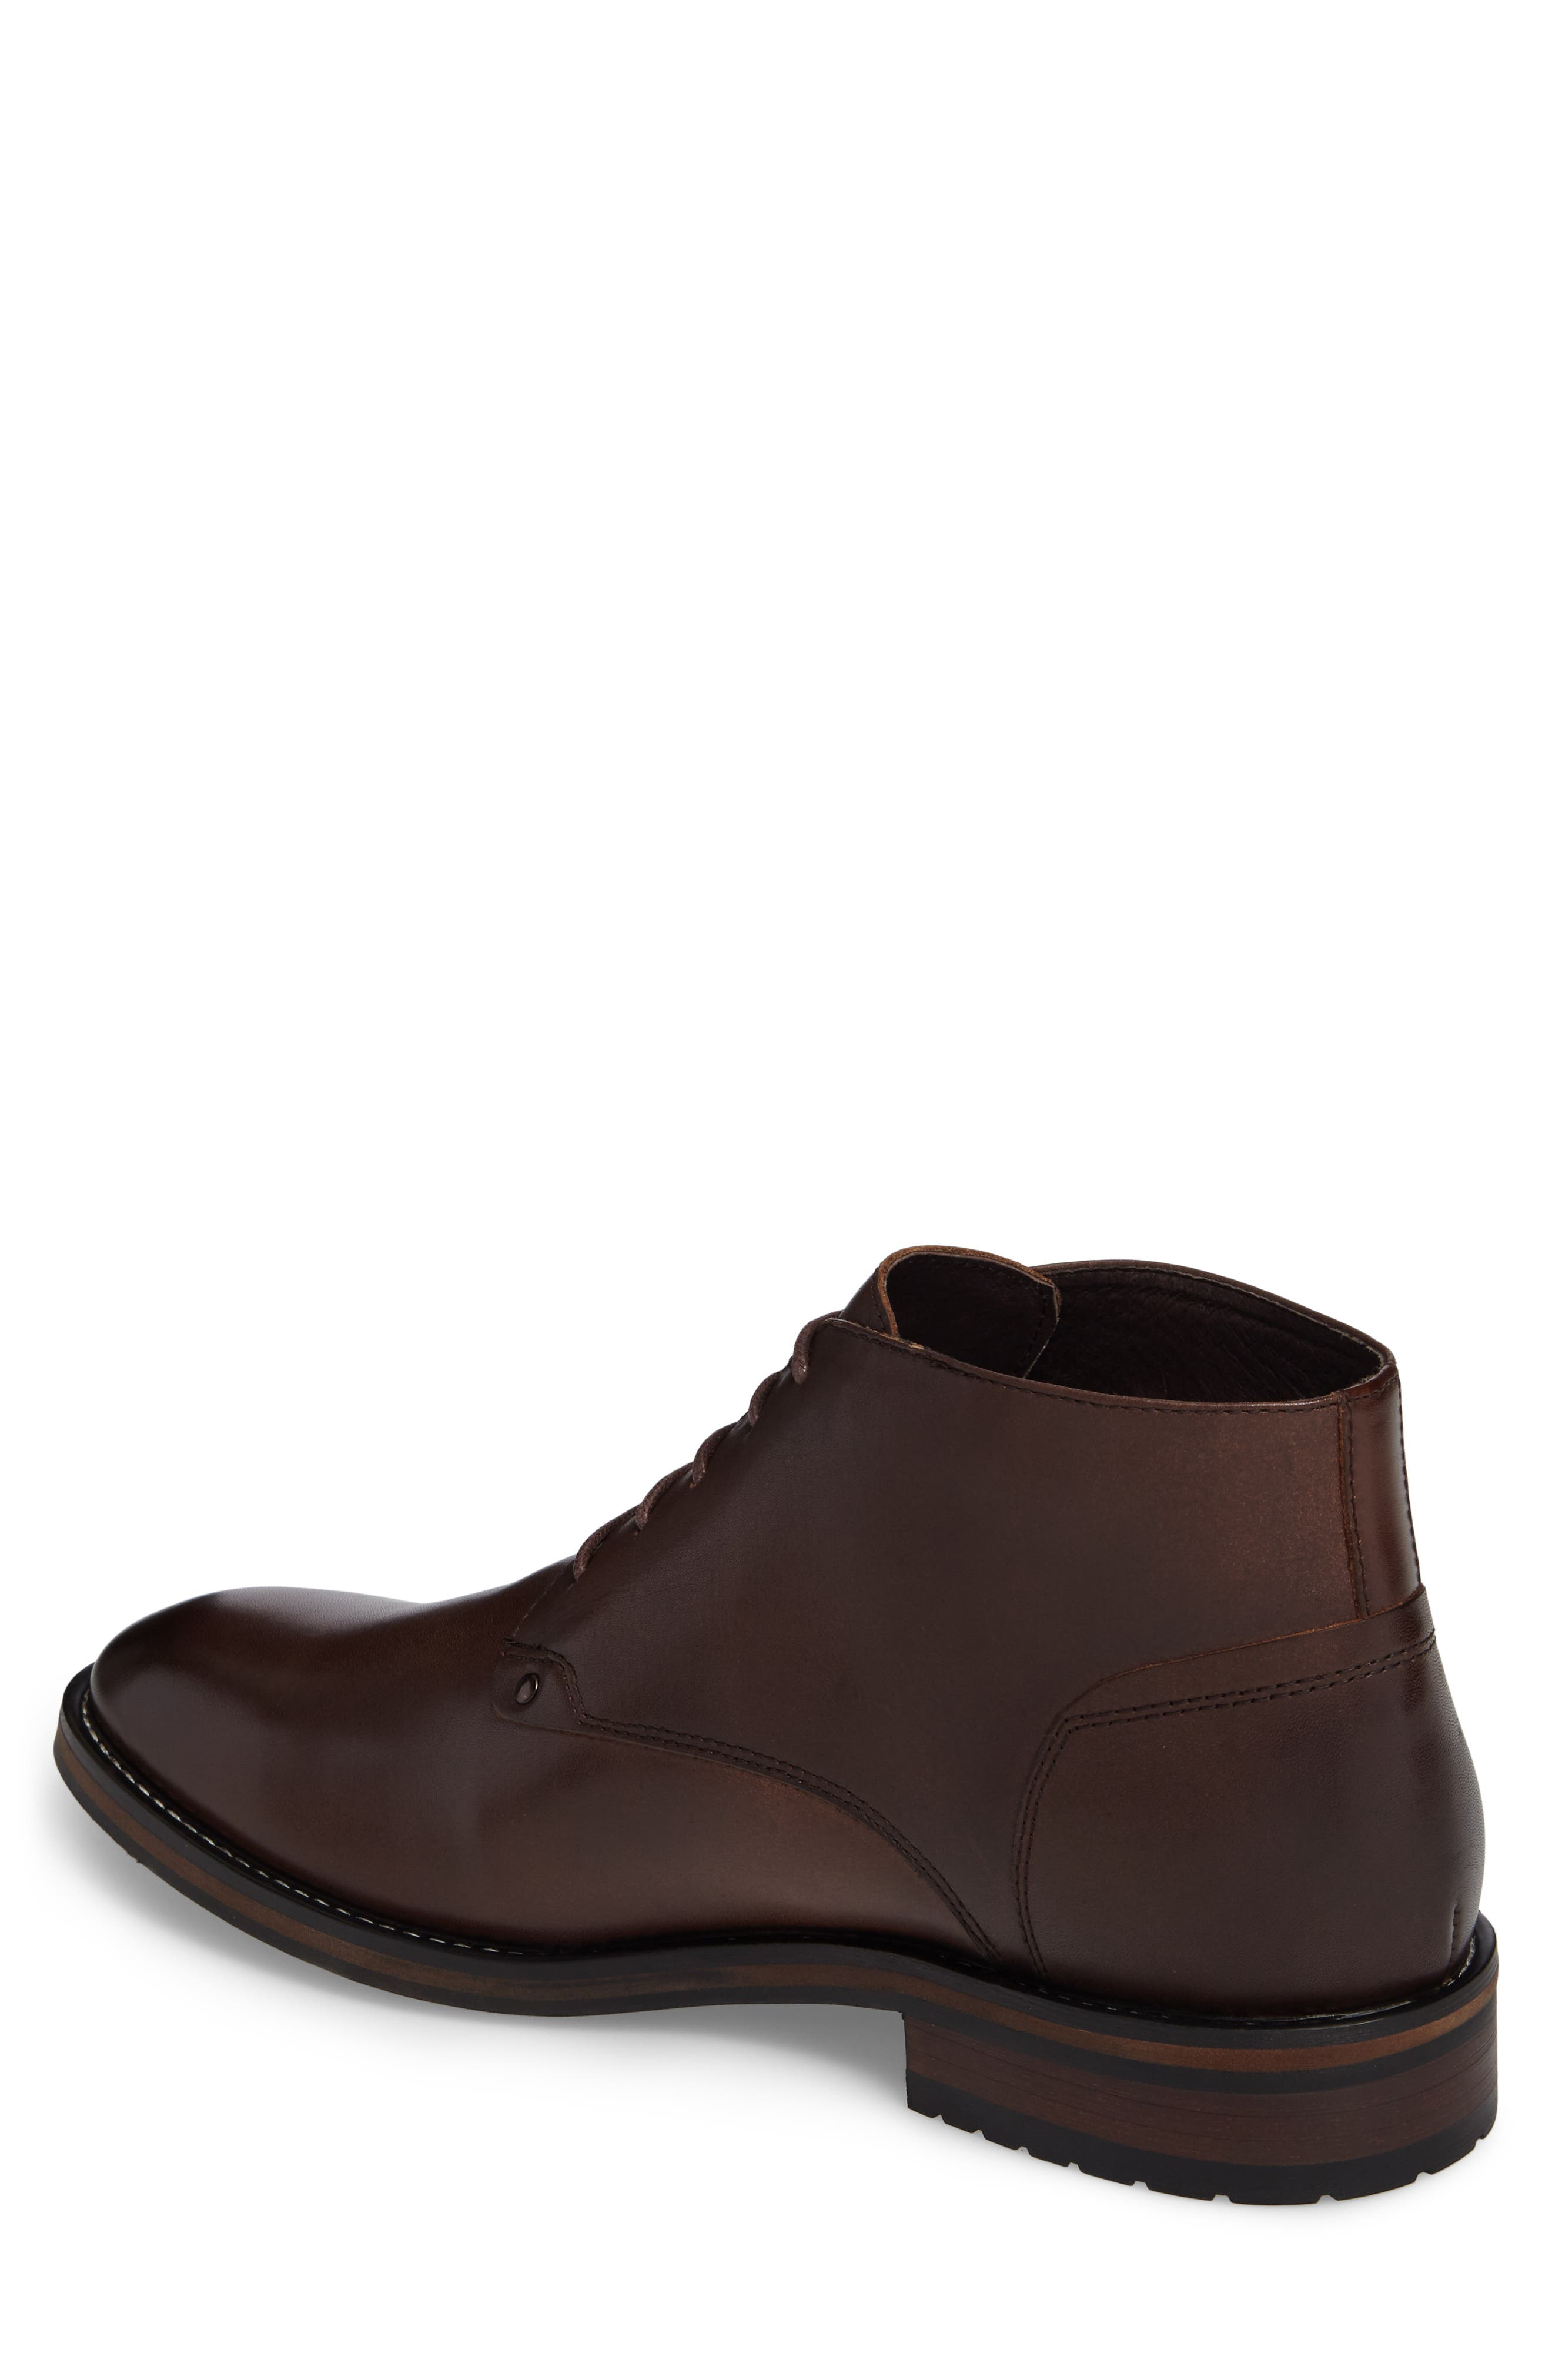 Malta Low Boot,                             Alternate thumbnail 2, color,                             Brown Leather